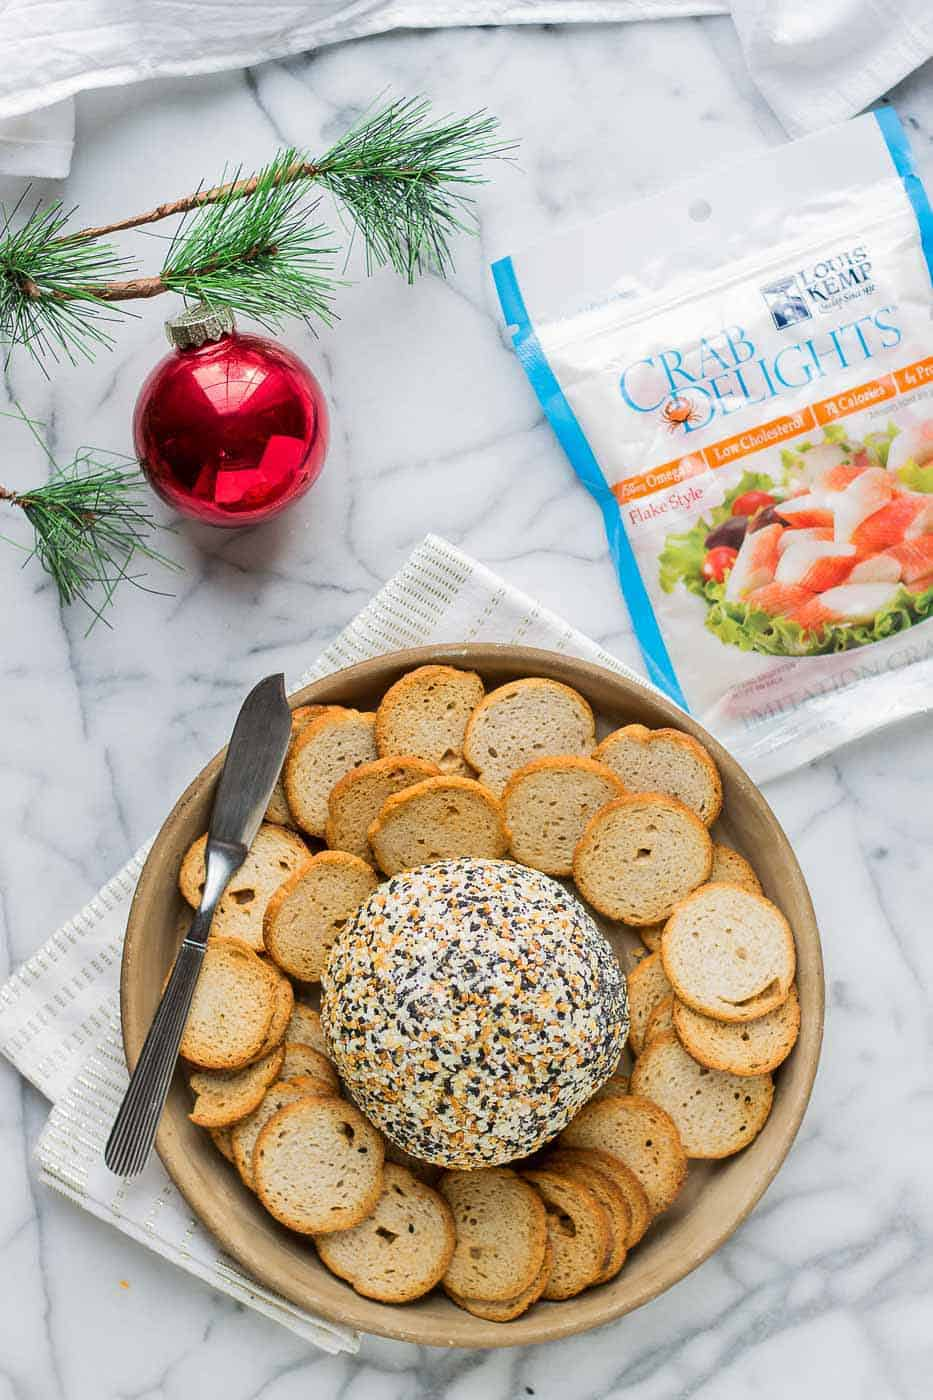 This Crab and Everything Bagel Cheese Ball is packed with crab, fresh herbs and rolled in everything bagel seasoning.  An appetizer worthy of your next get together! | Strawberry Blondie Kitchen